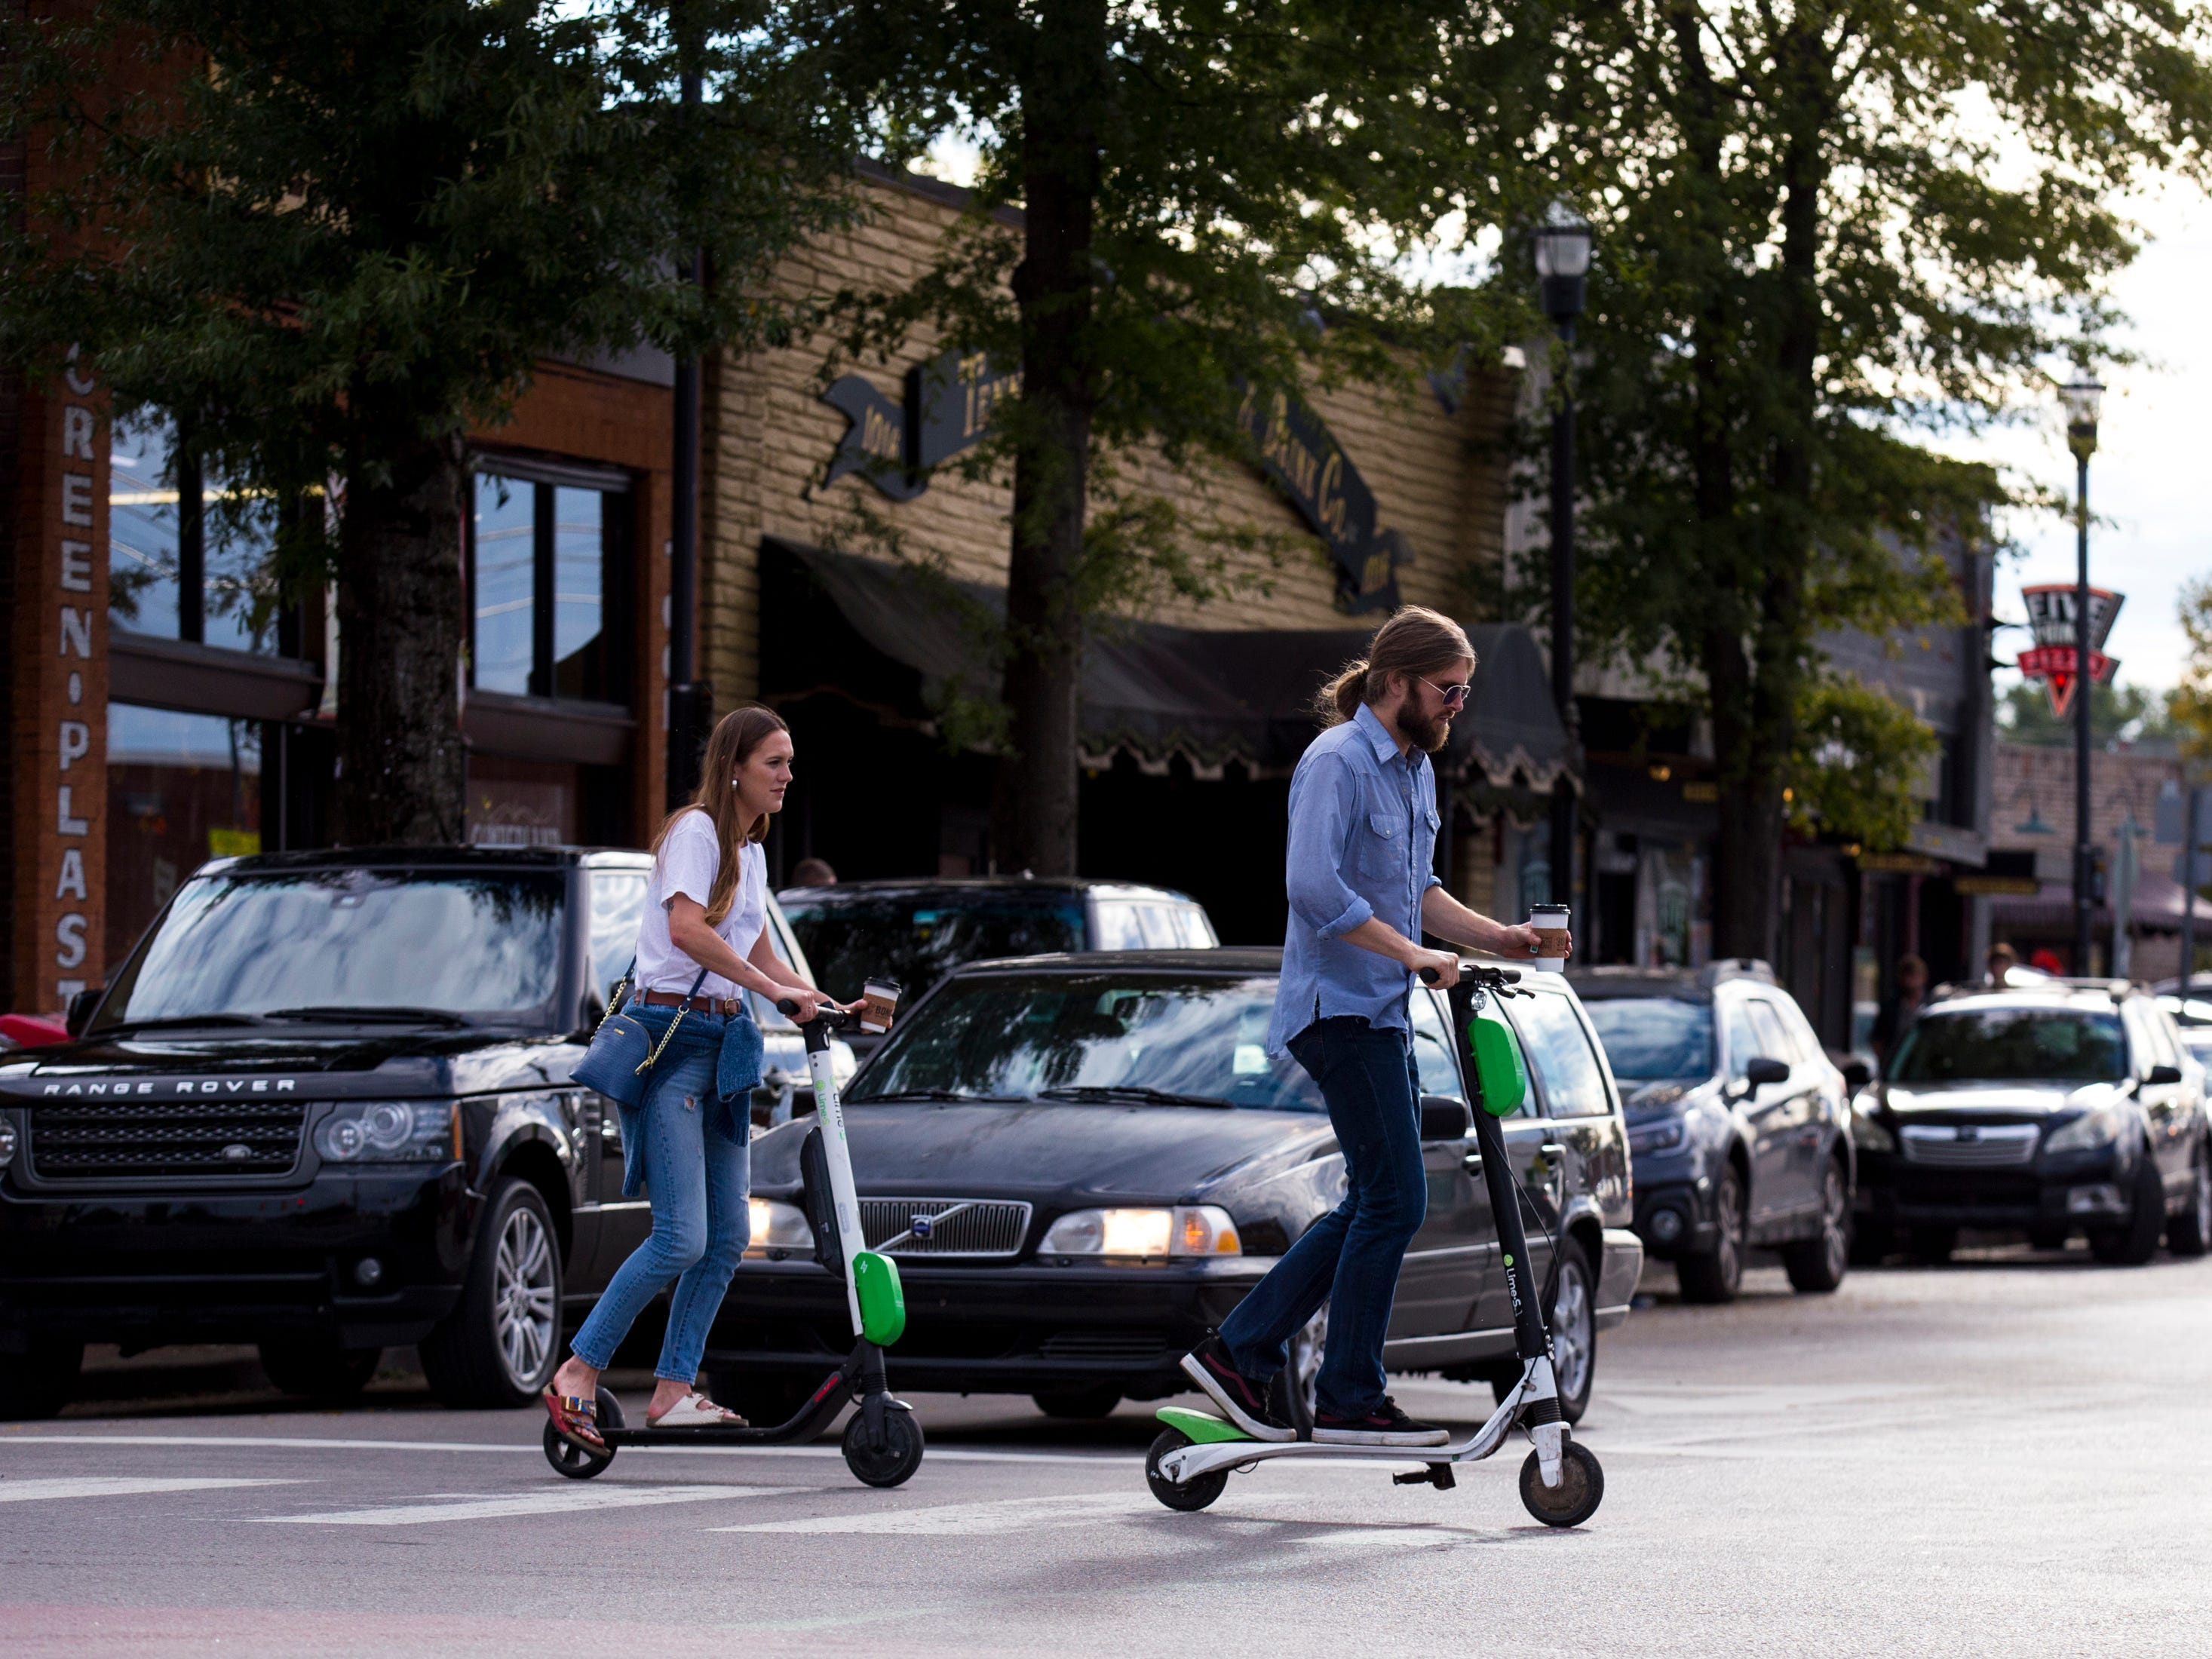 E-scooters could come to Fort Collins, but city wants to prevent issues seen in other communities